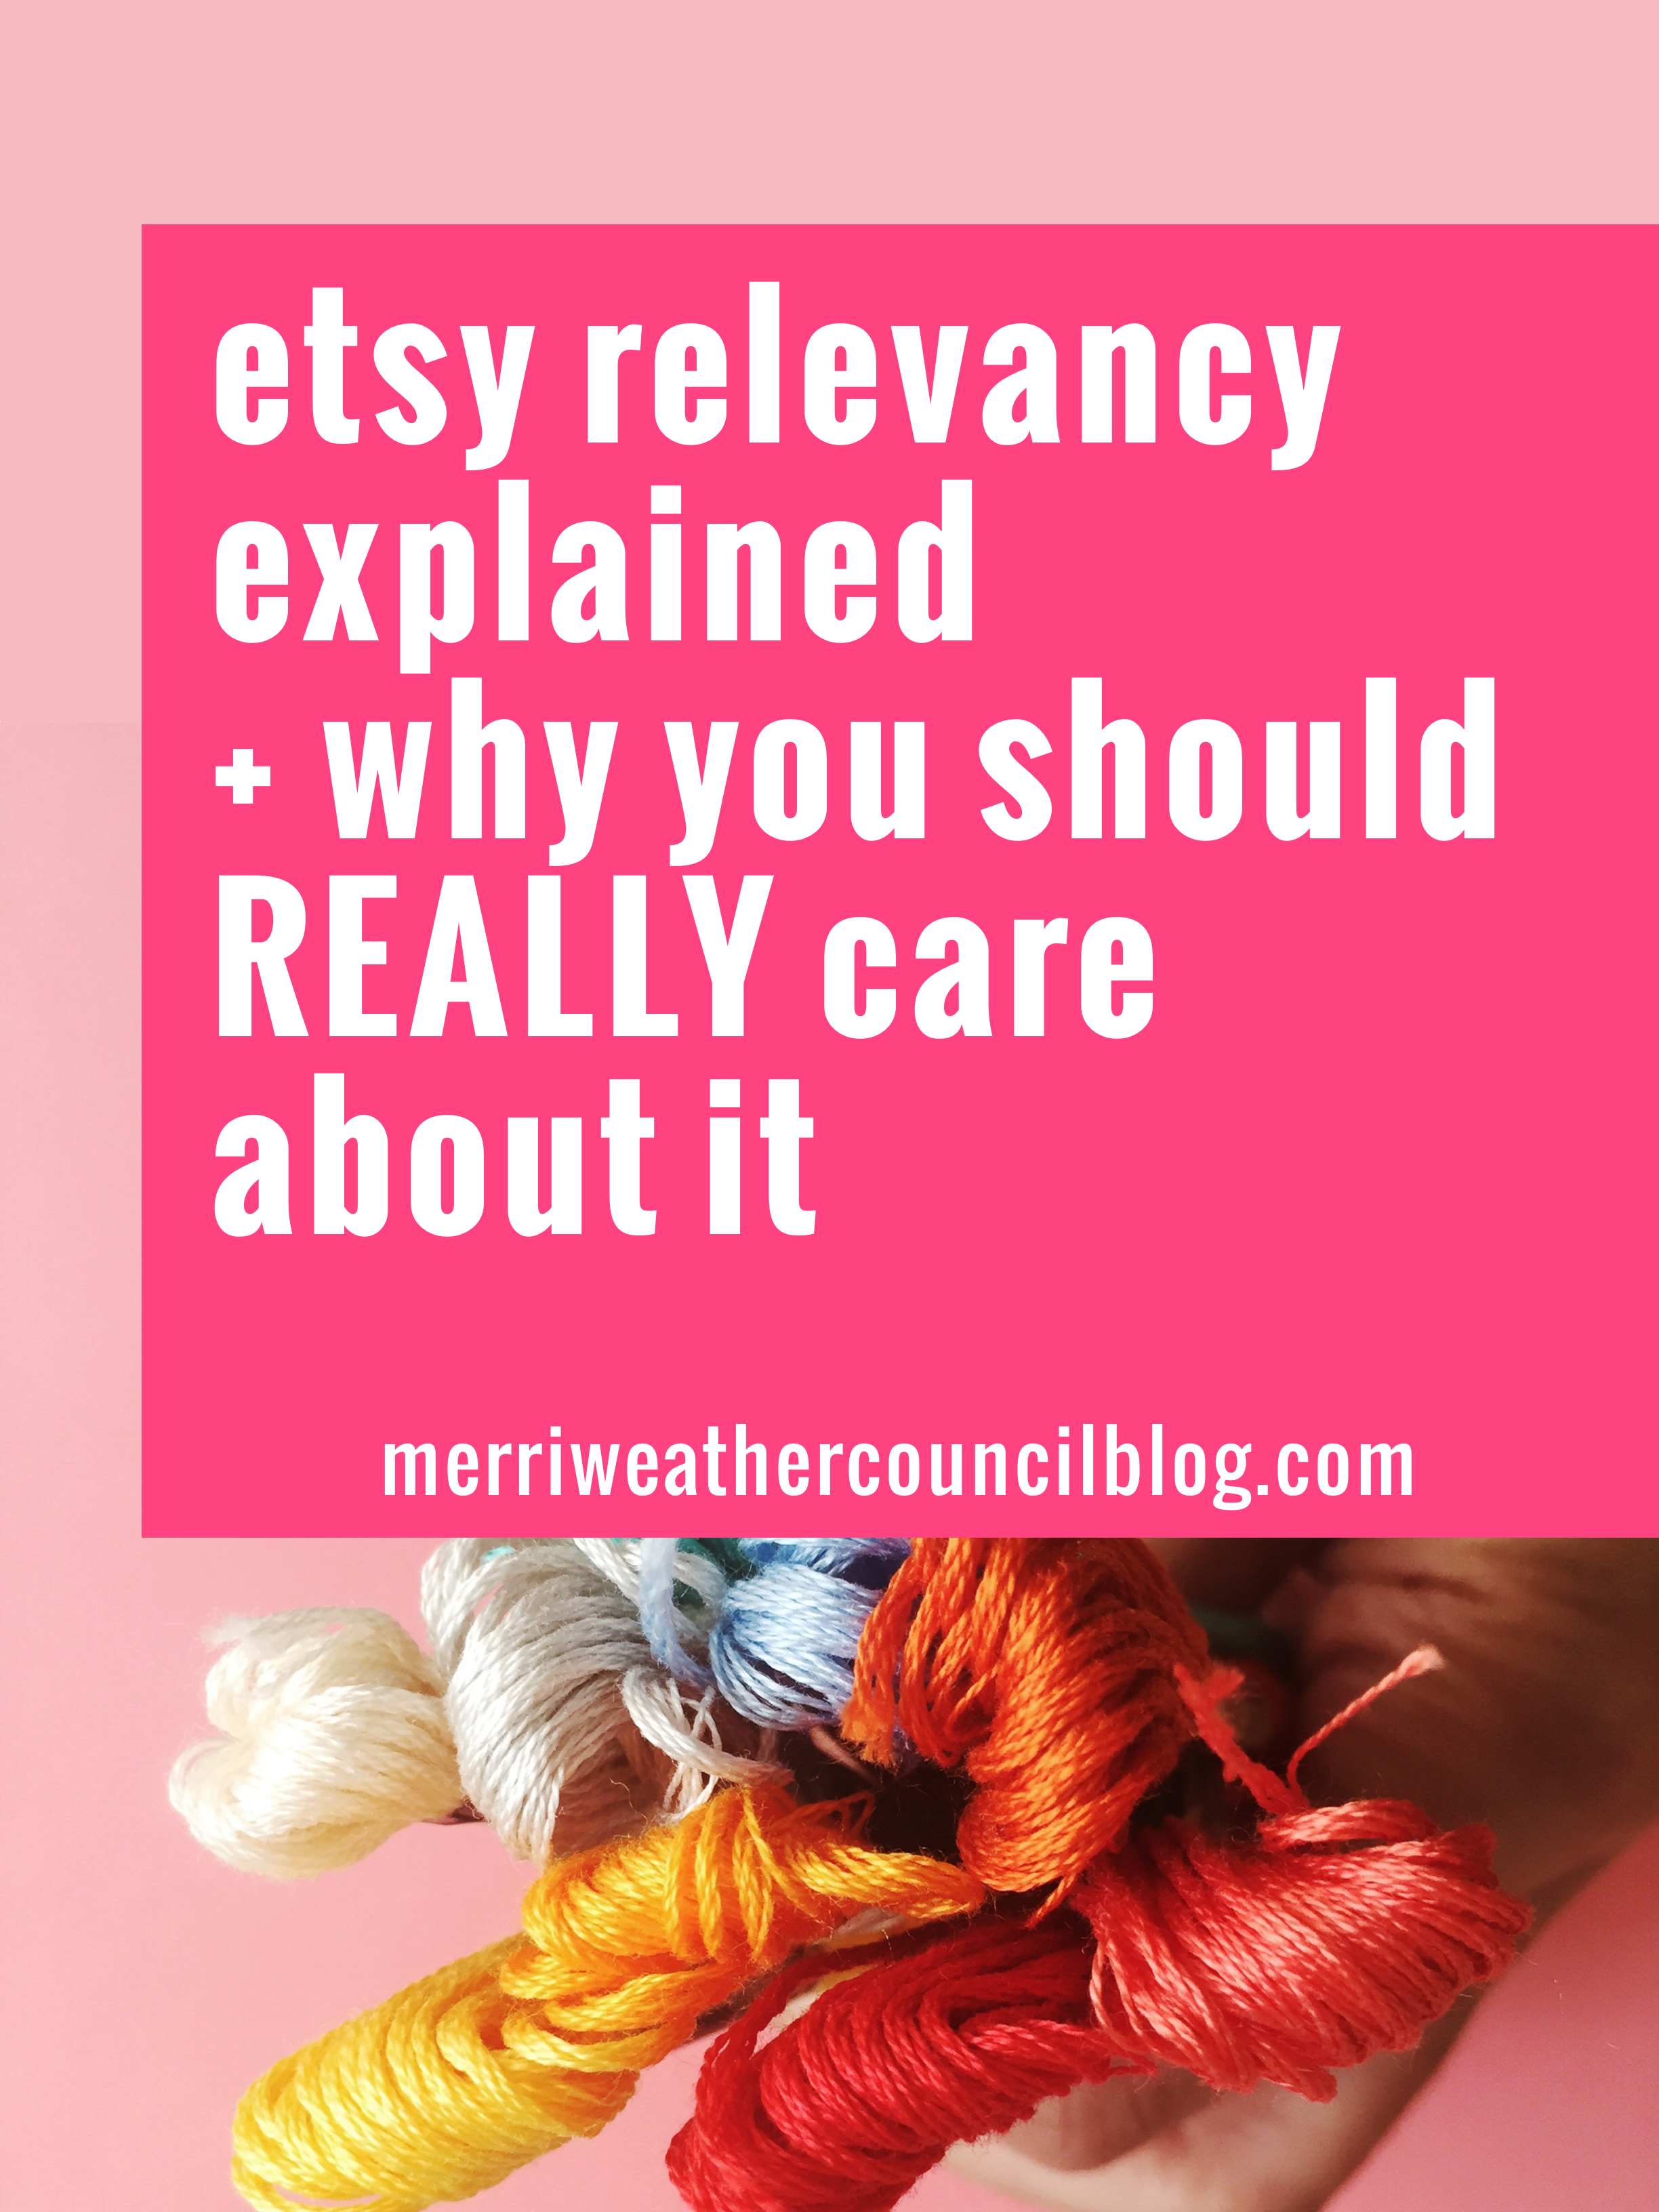 etsy relevancy explained | the merriweather council blog